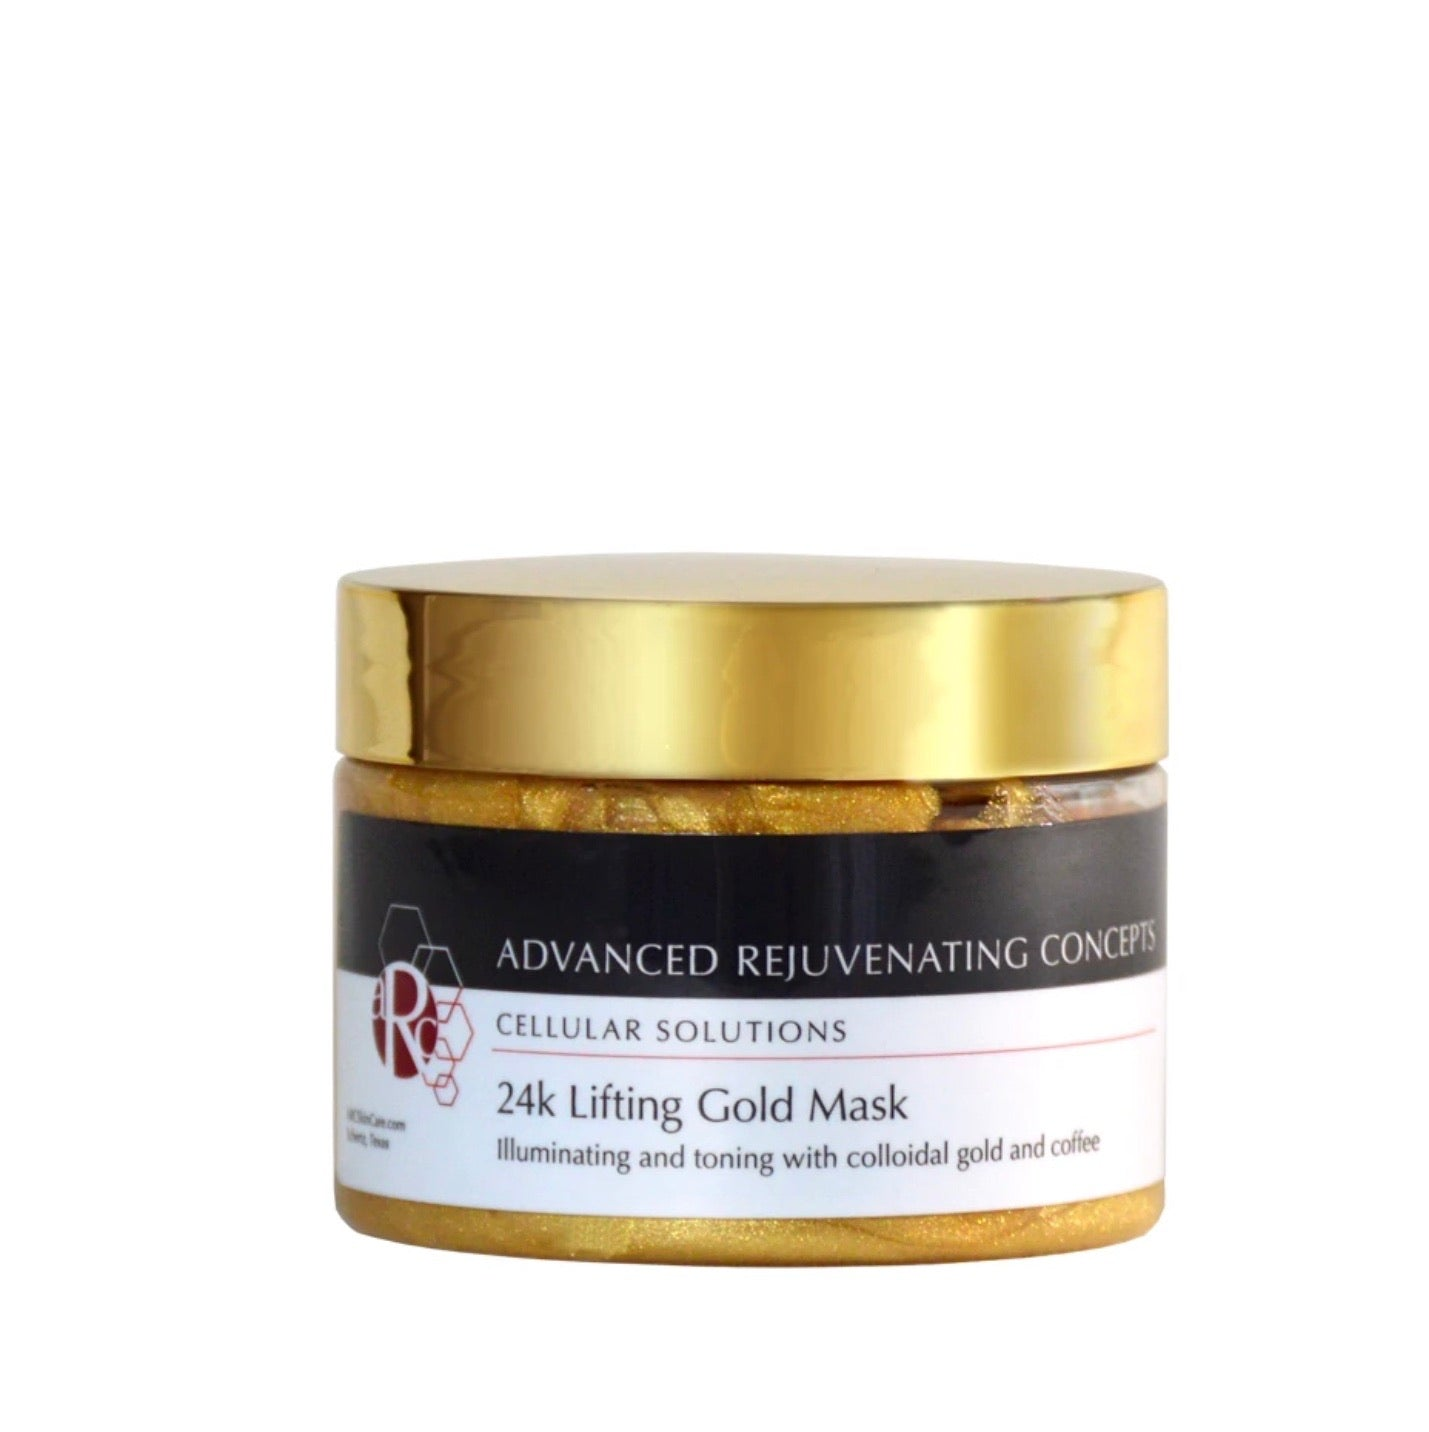 24K Lifting Gold Mask